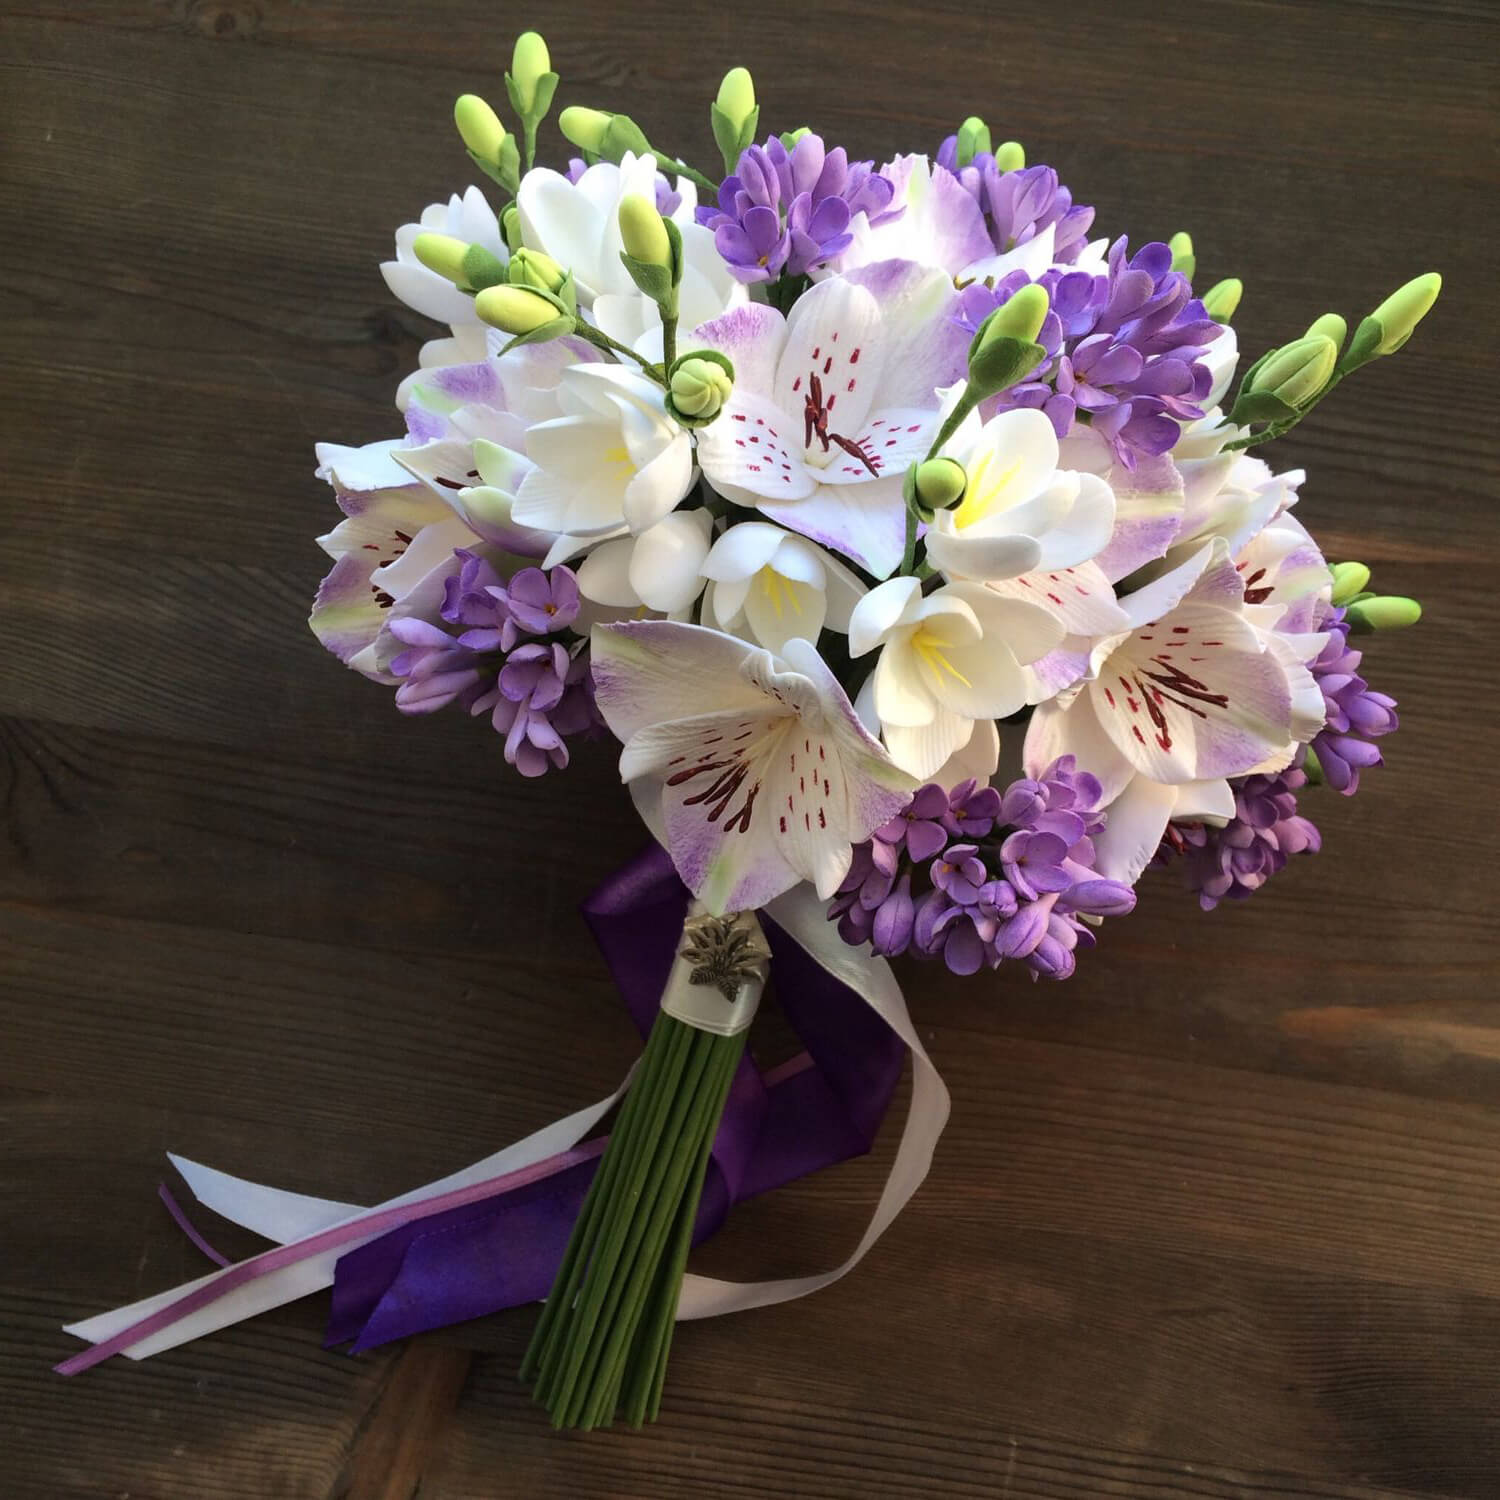 Wedding Flowers Lilac: Orchid And Lilac Wedding Bouquet